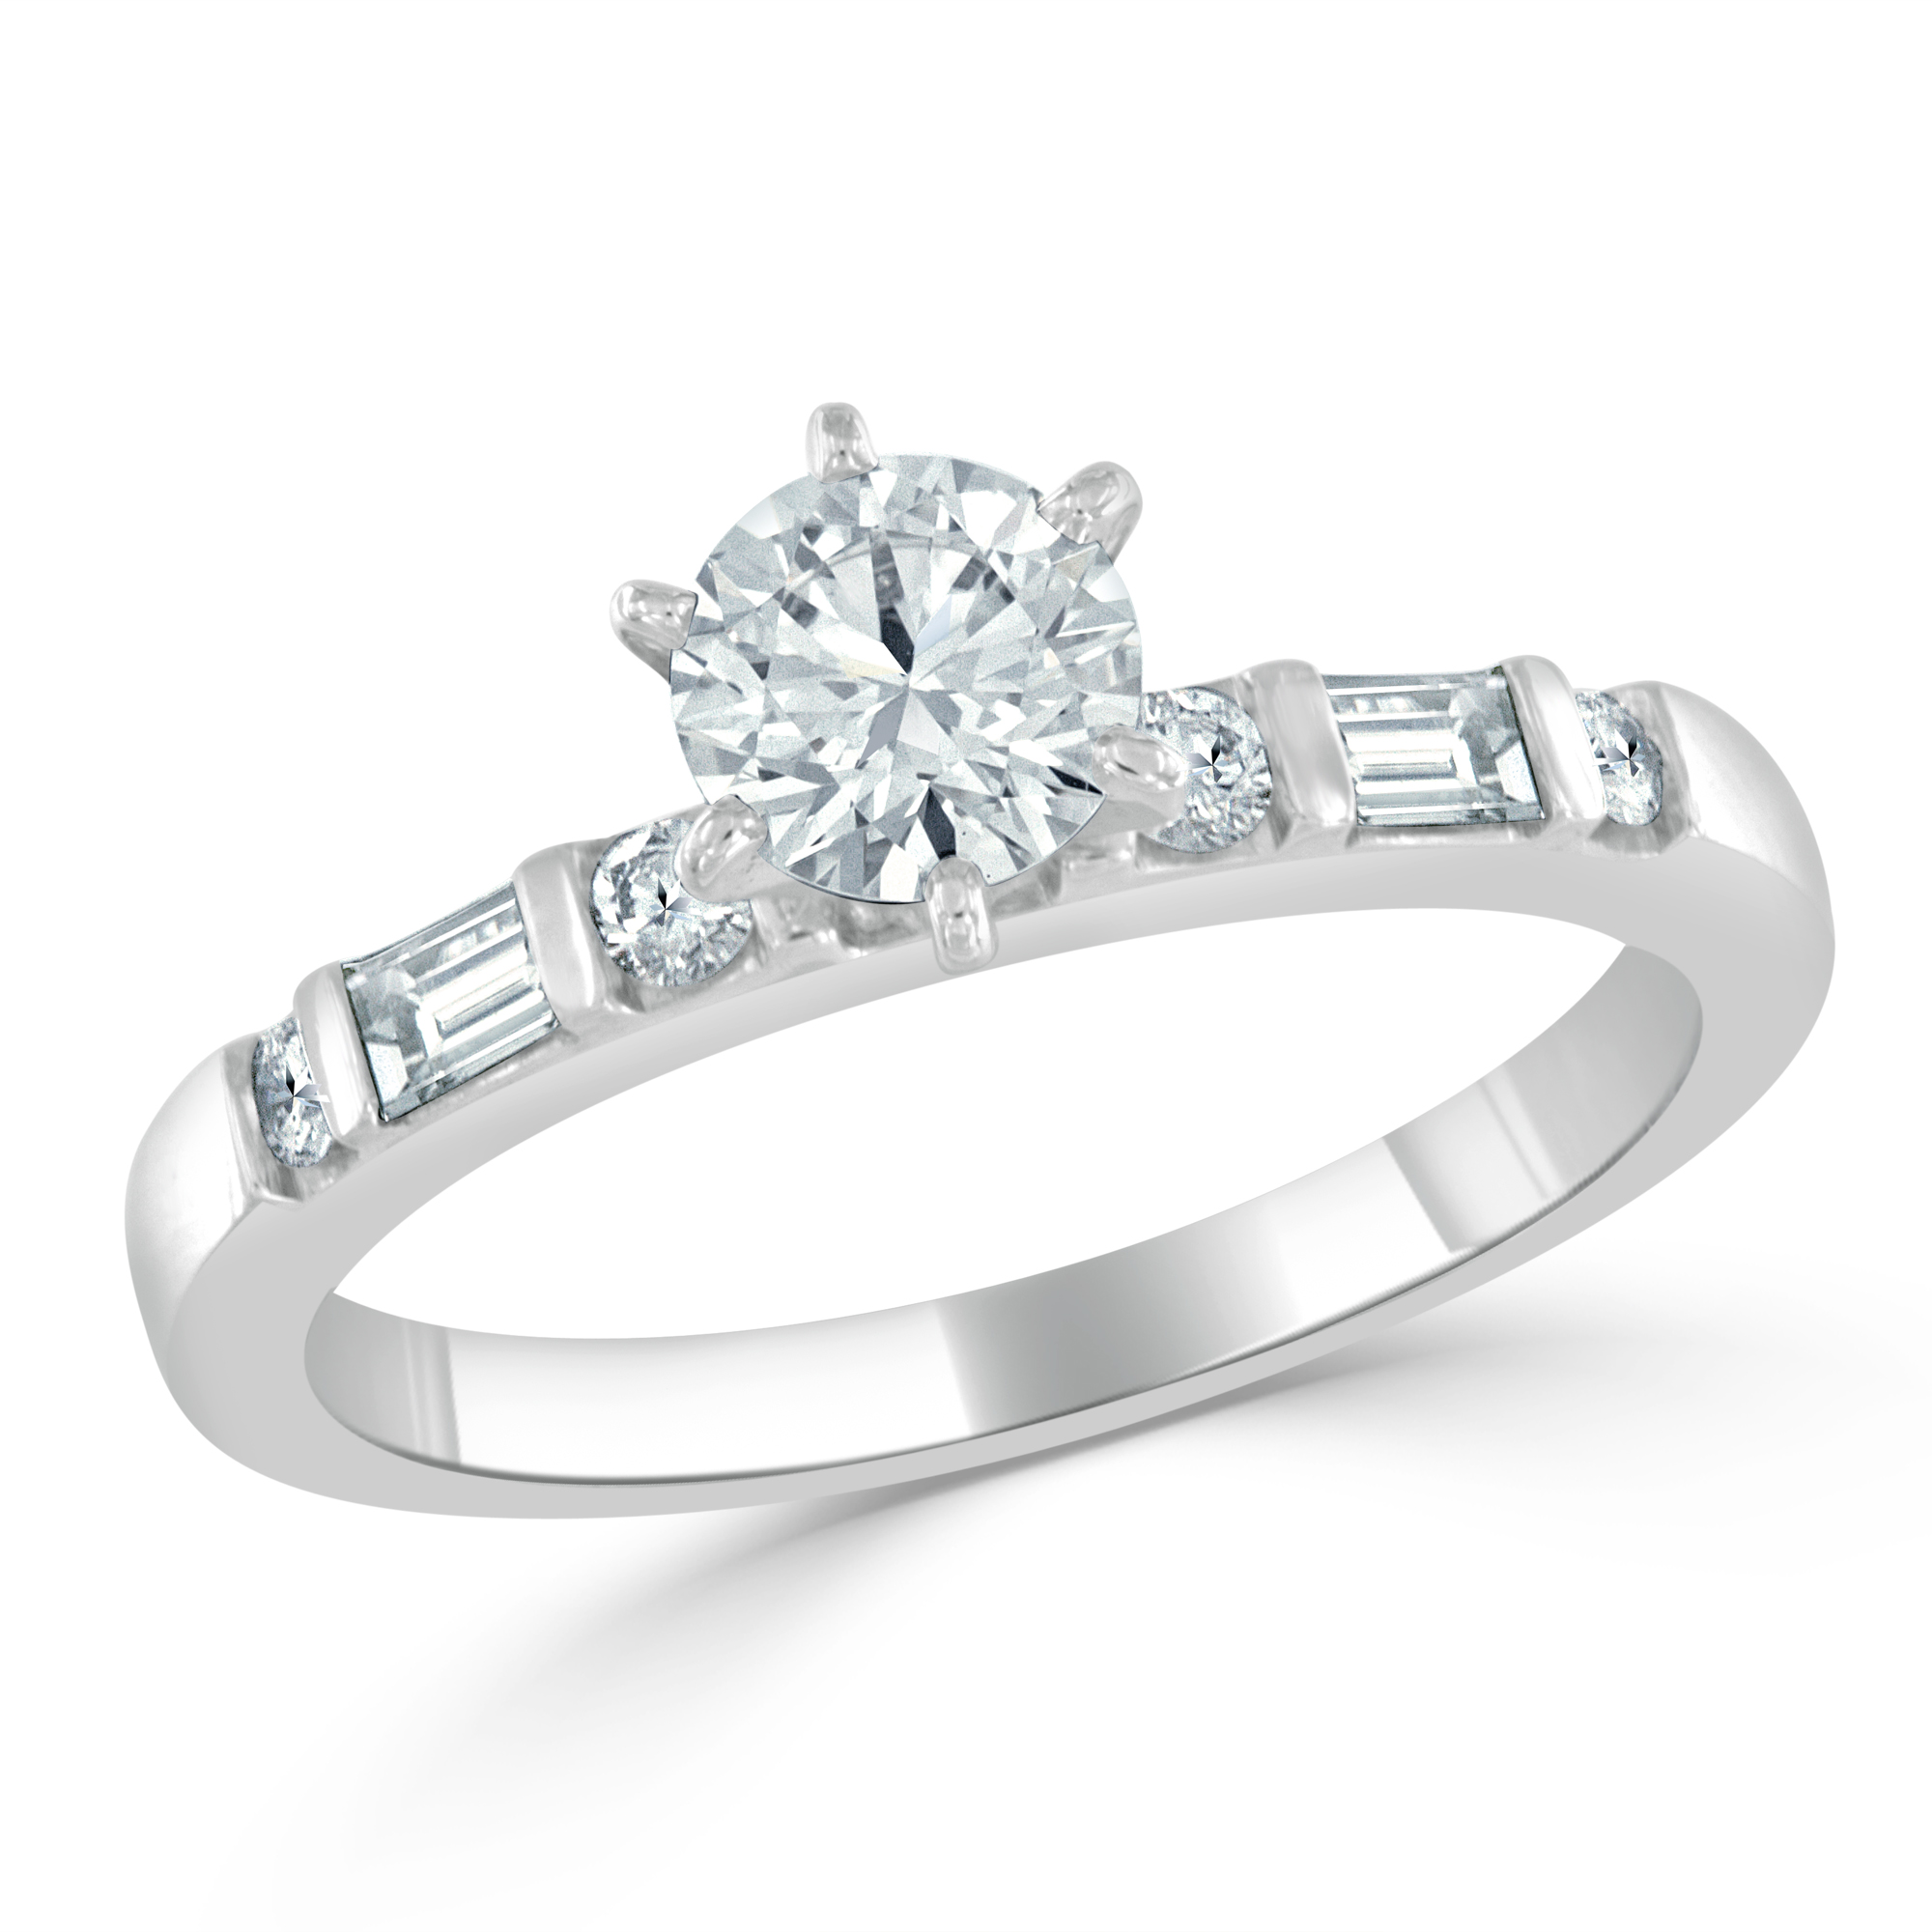 Round brilliant cut center diamond and baguette and round brilliant cut diamond engagement ring in platinum.